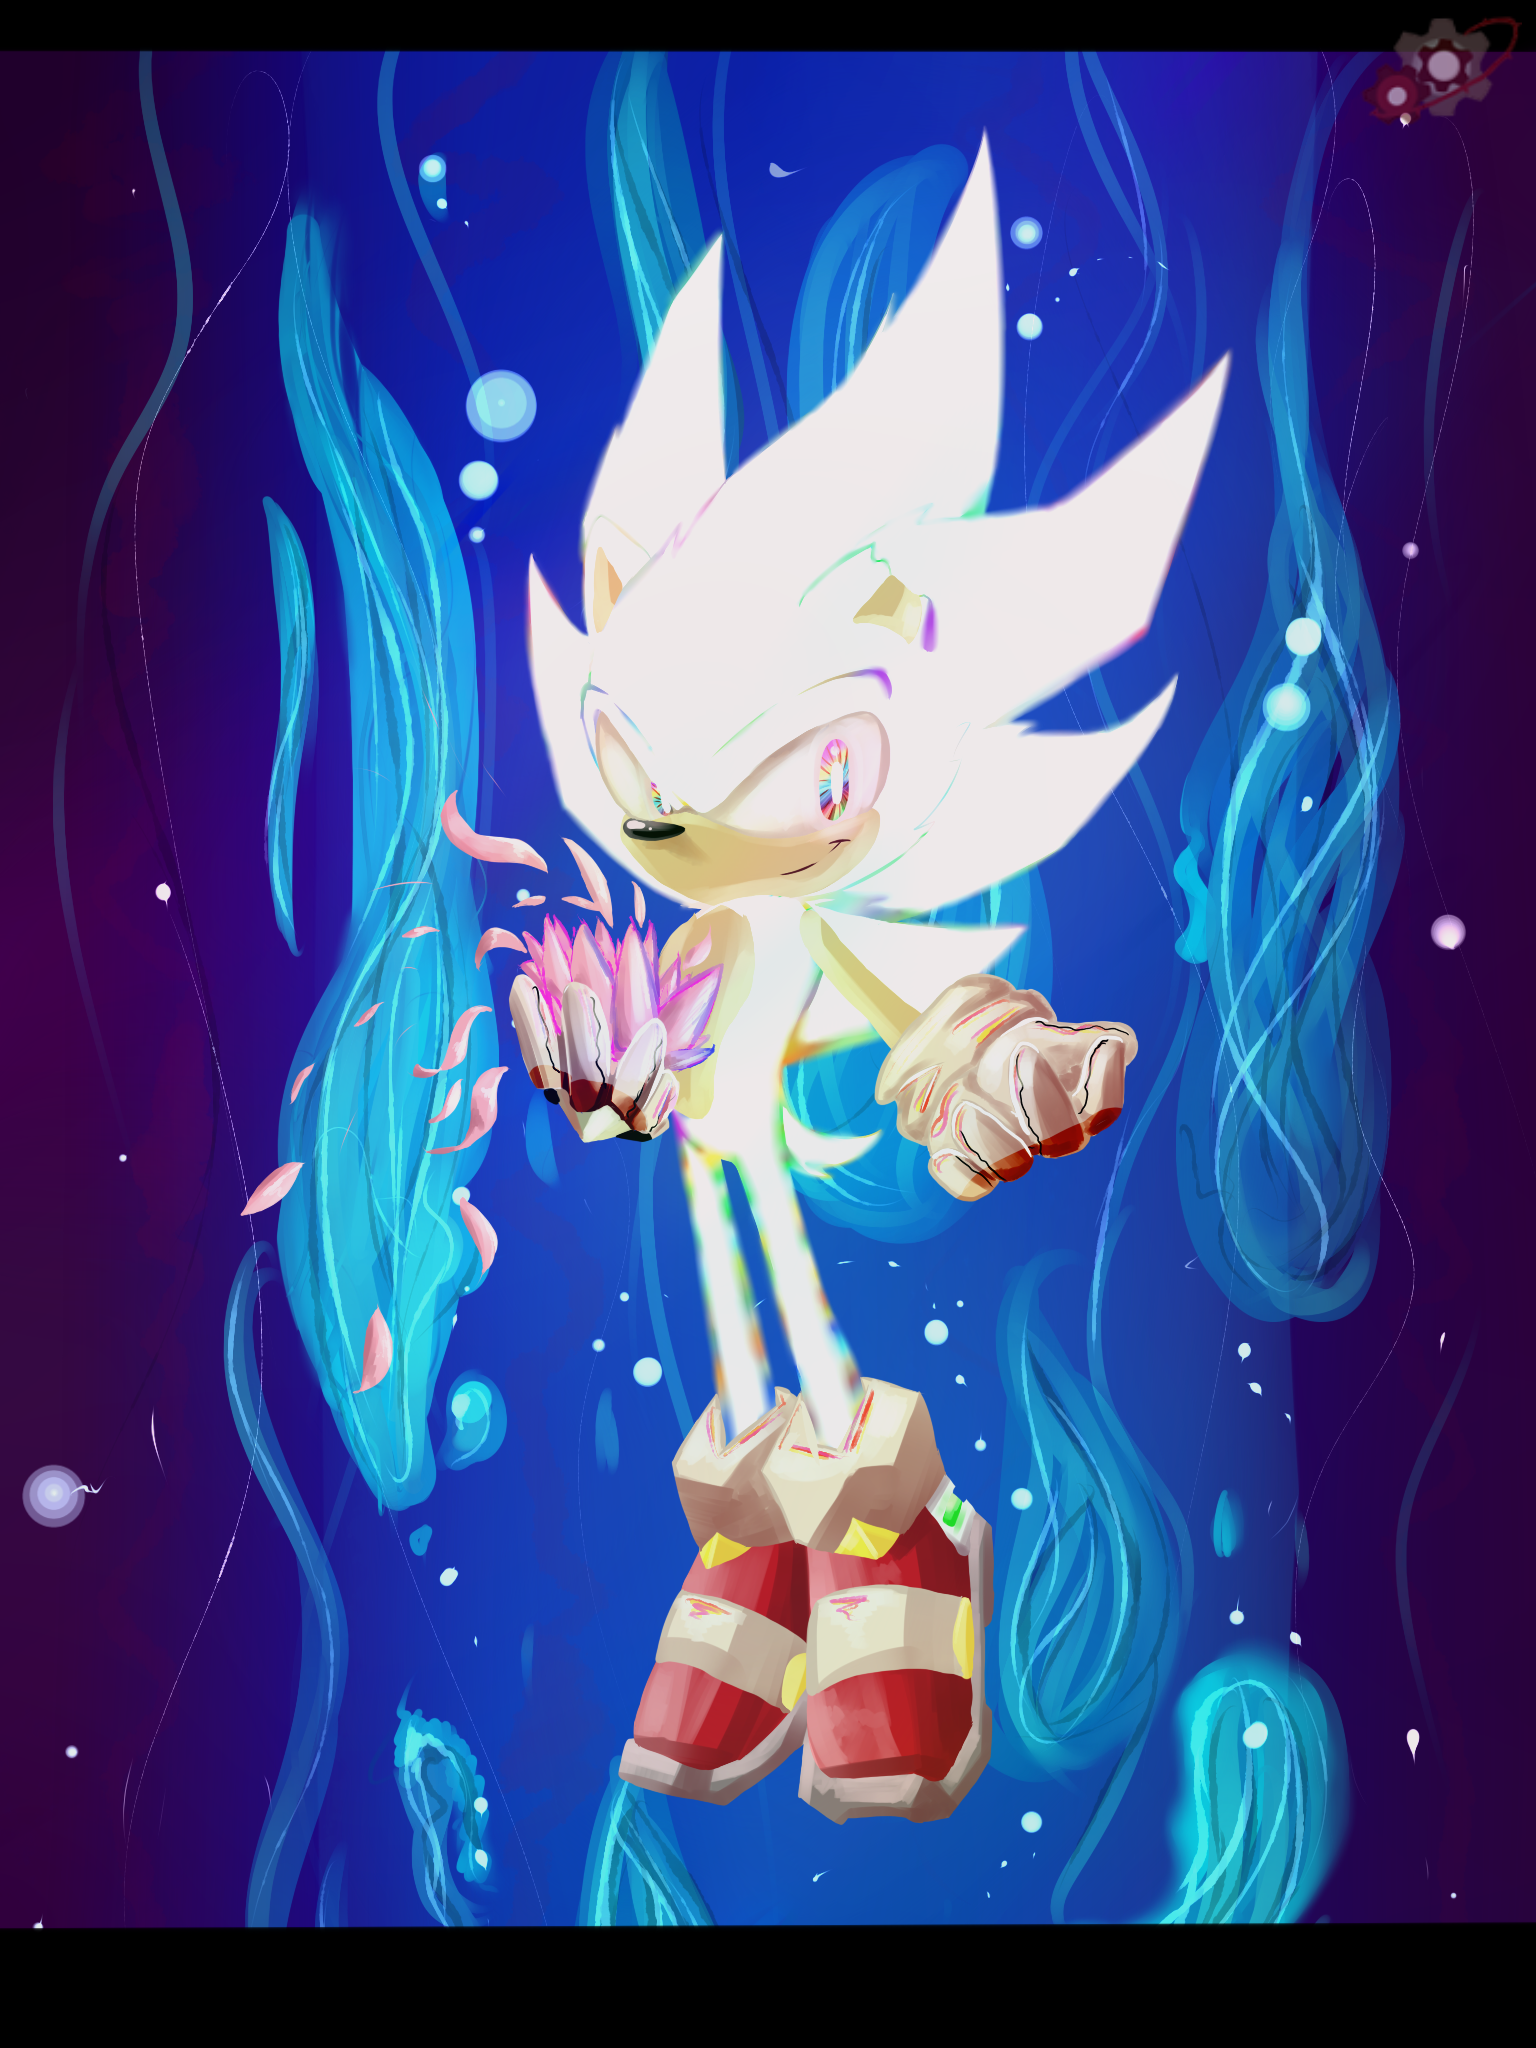 hyper_sonic_by_mechasvitch-d9s4lw5.png